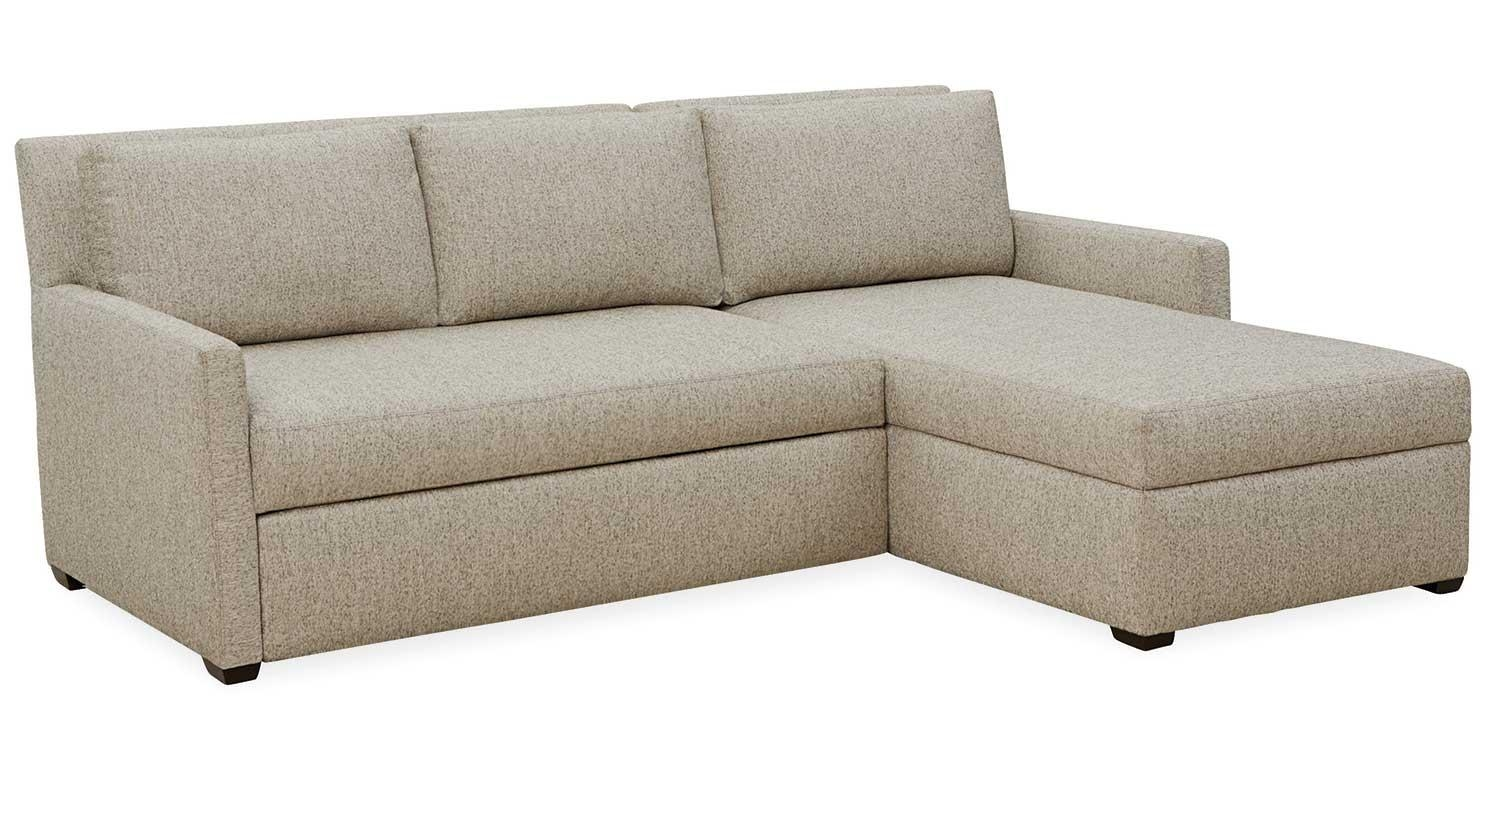 Circle Furniture – Sleeper Sofa | Sectional Sleepers | Circle Intended For Austin Sleeper Sofas (View 5 of 20)